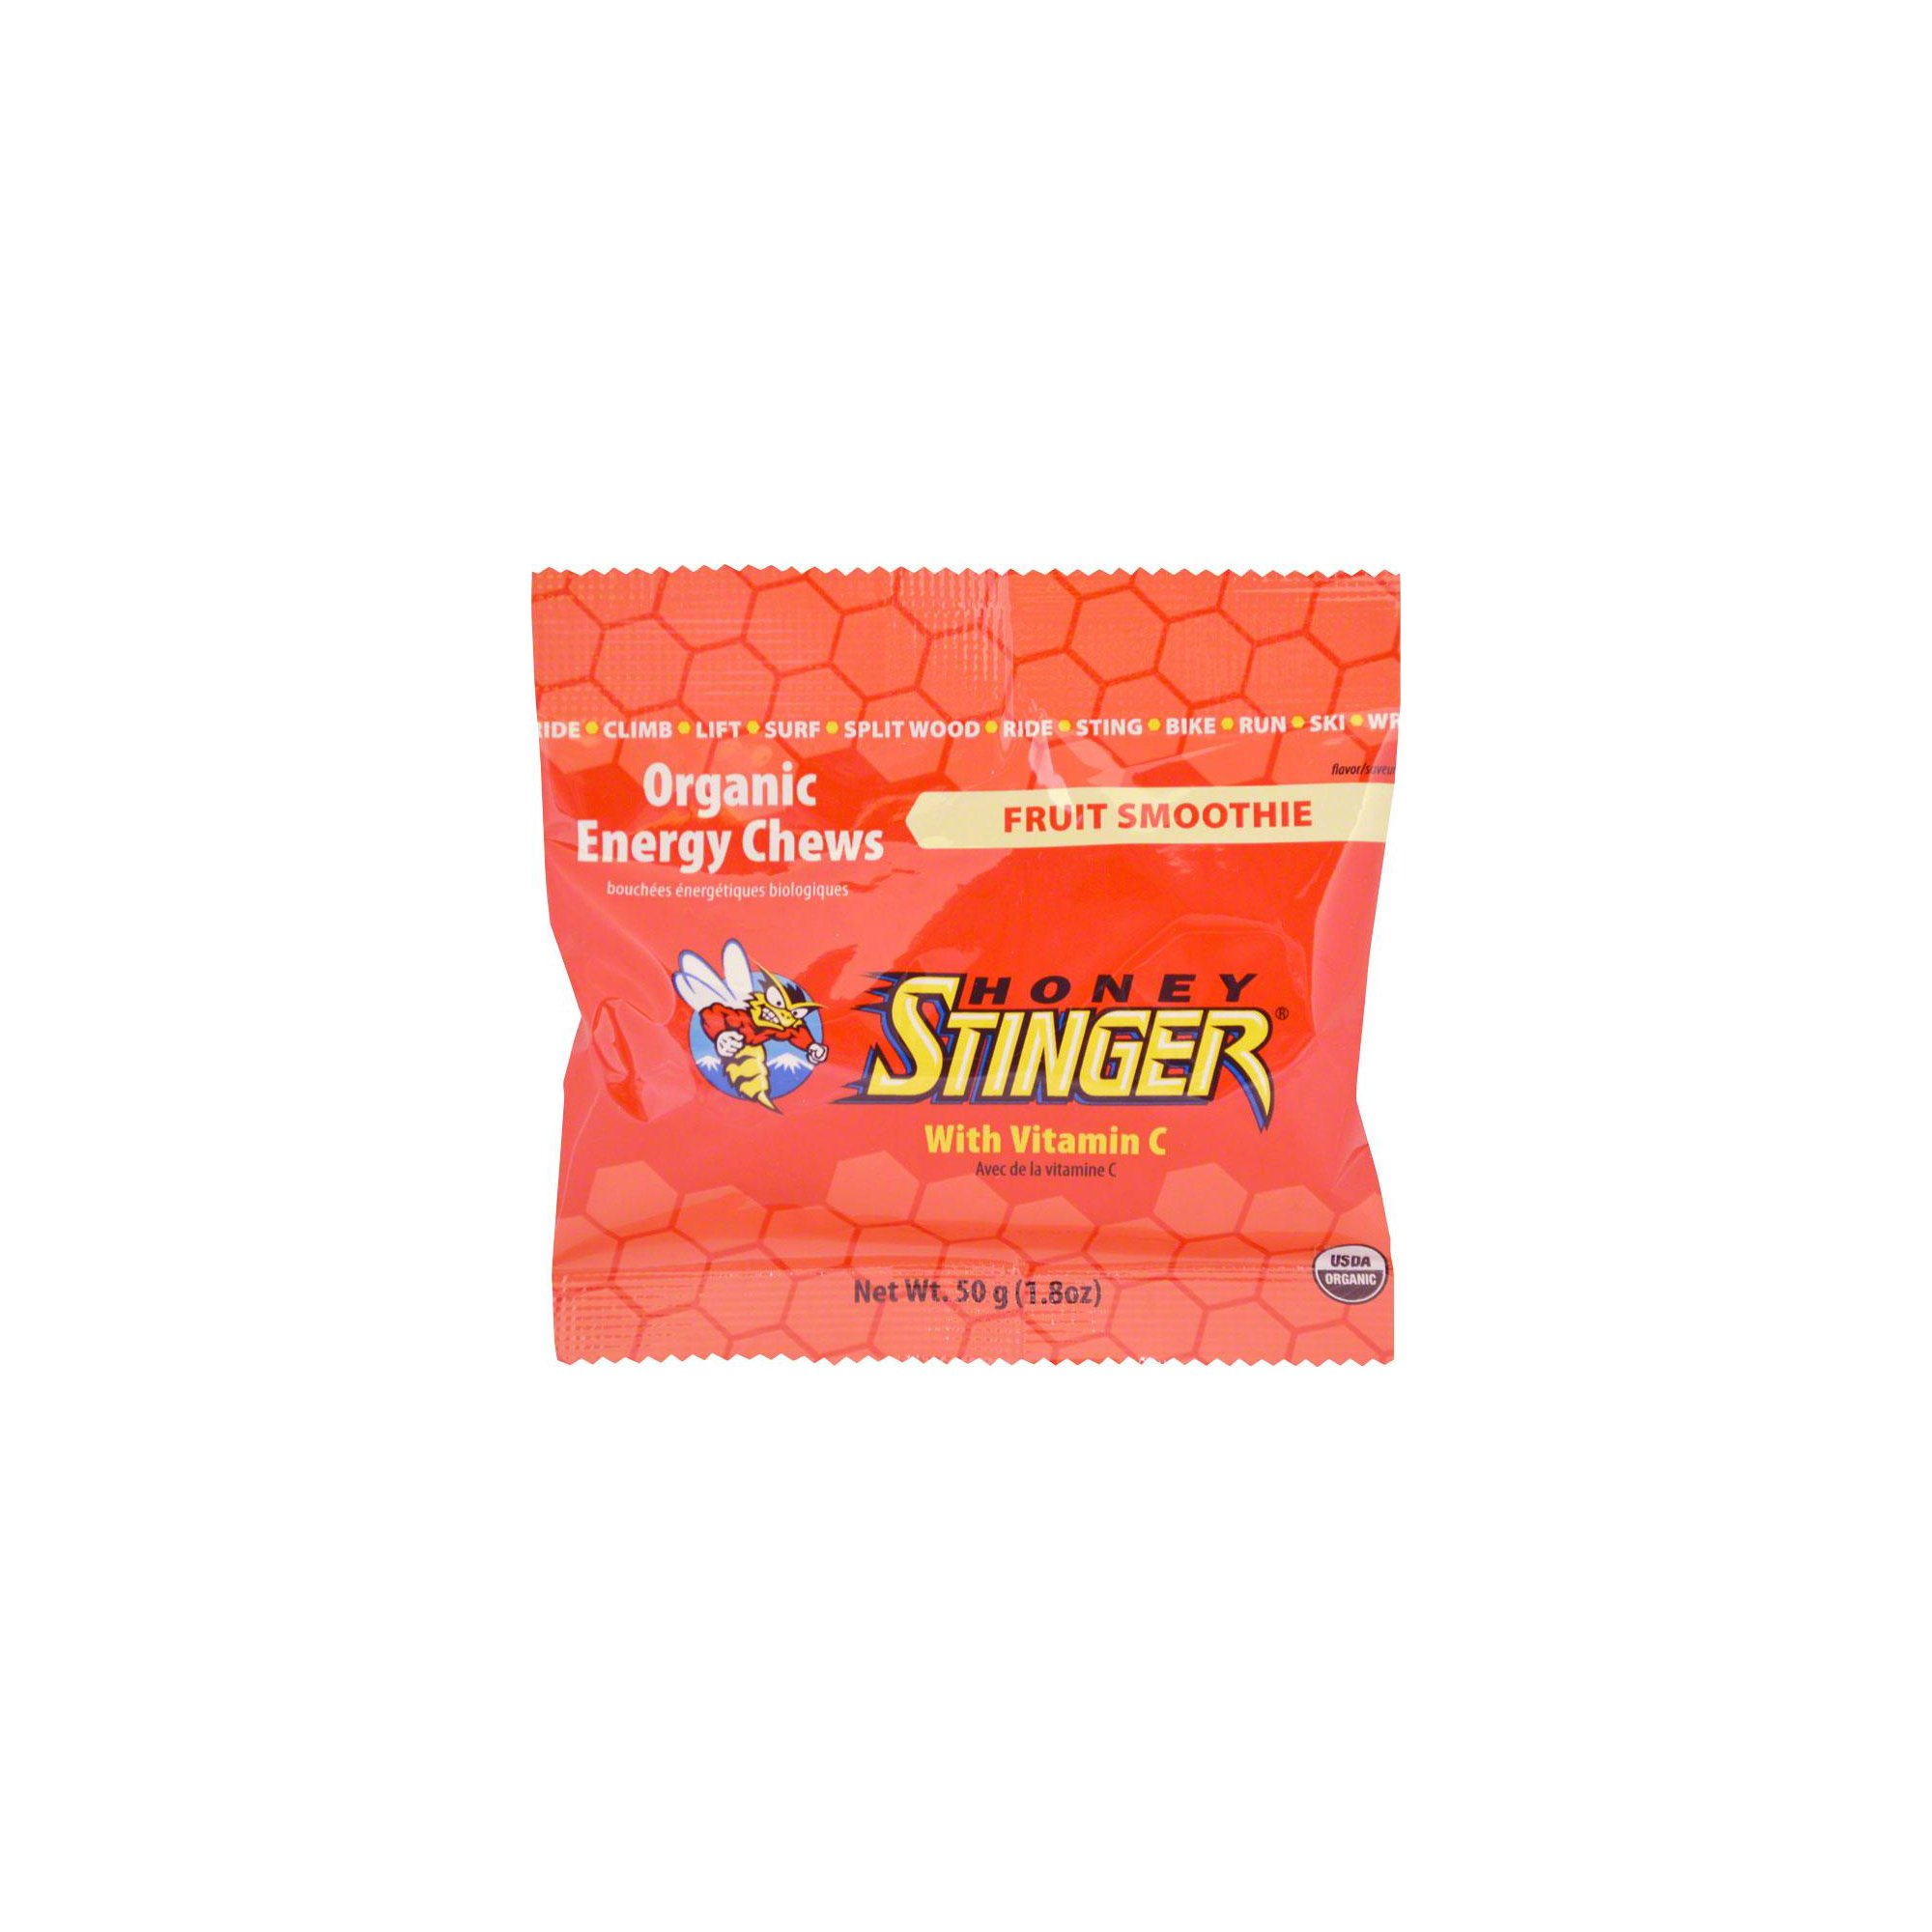 Organic Energy Chews - Fruit Smoothie 12/1.8 Ounce (50 g) Packets